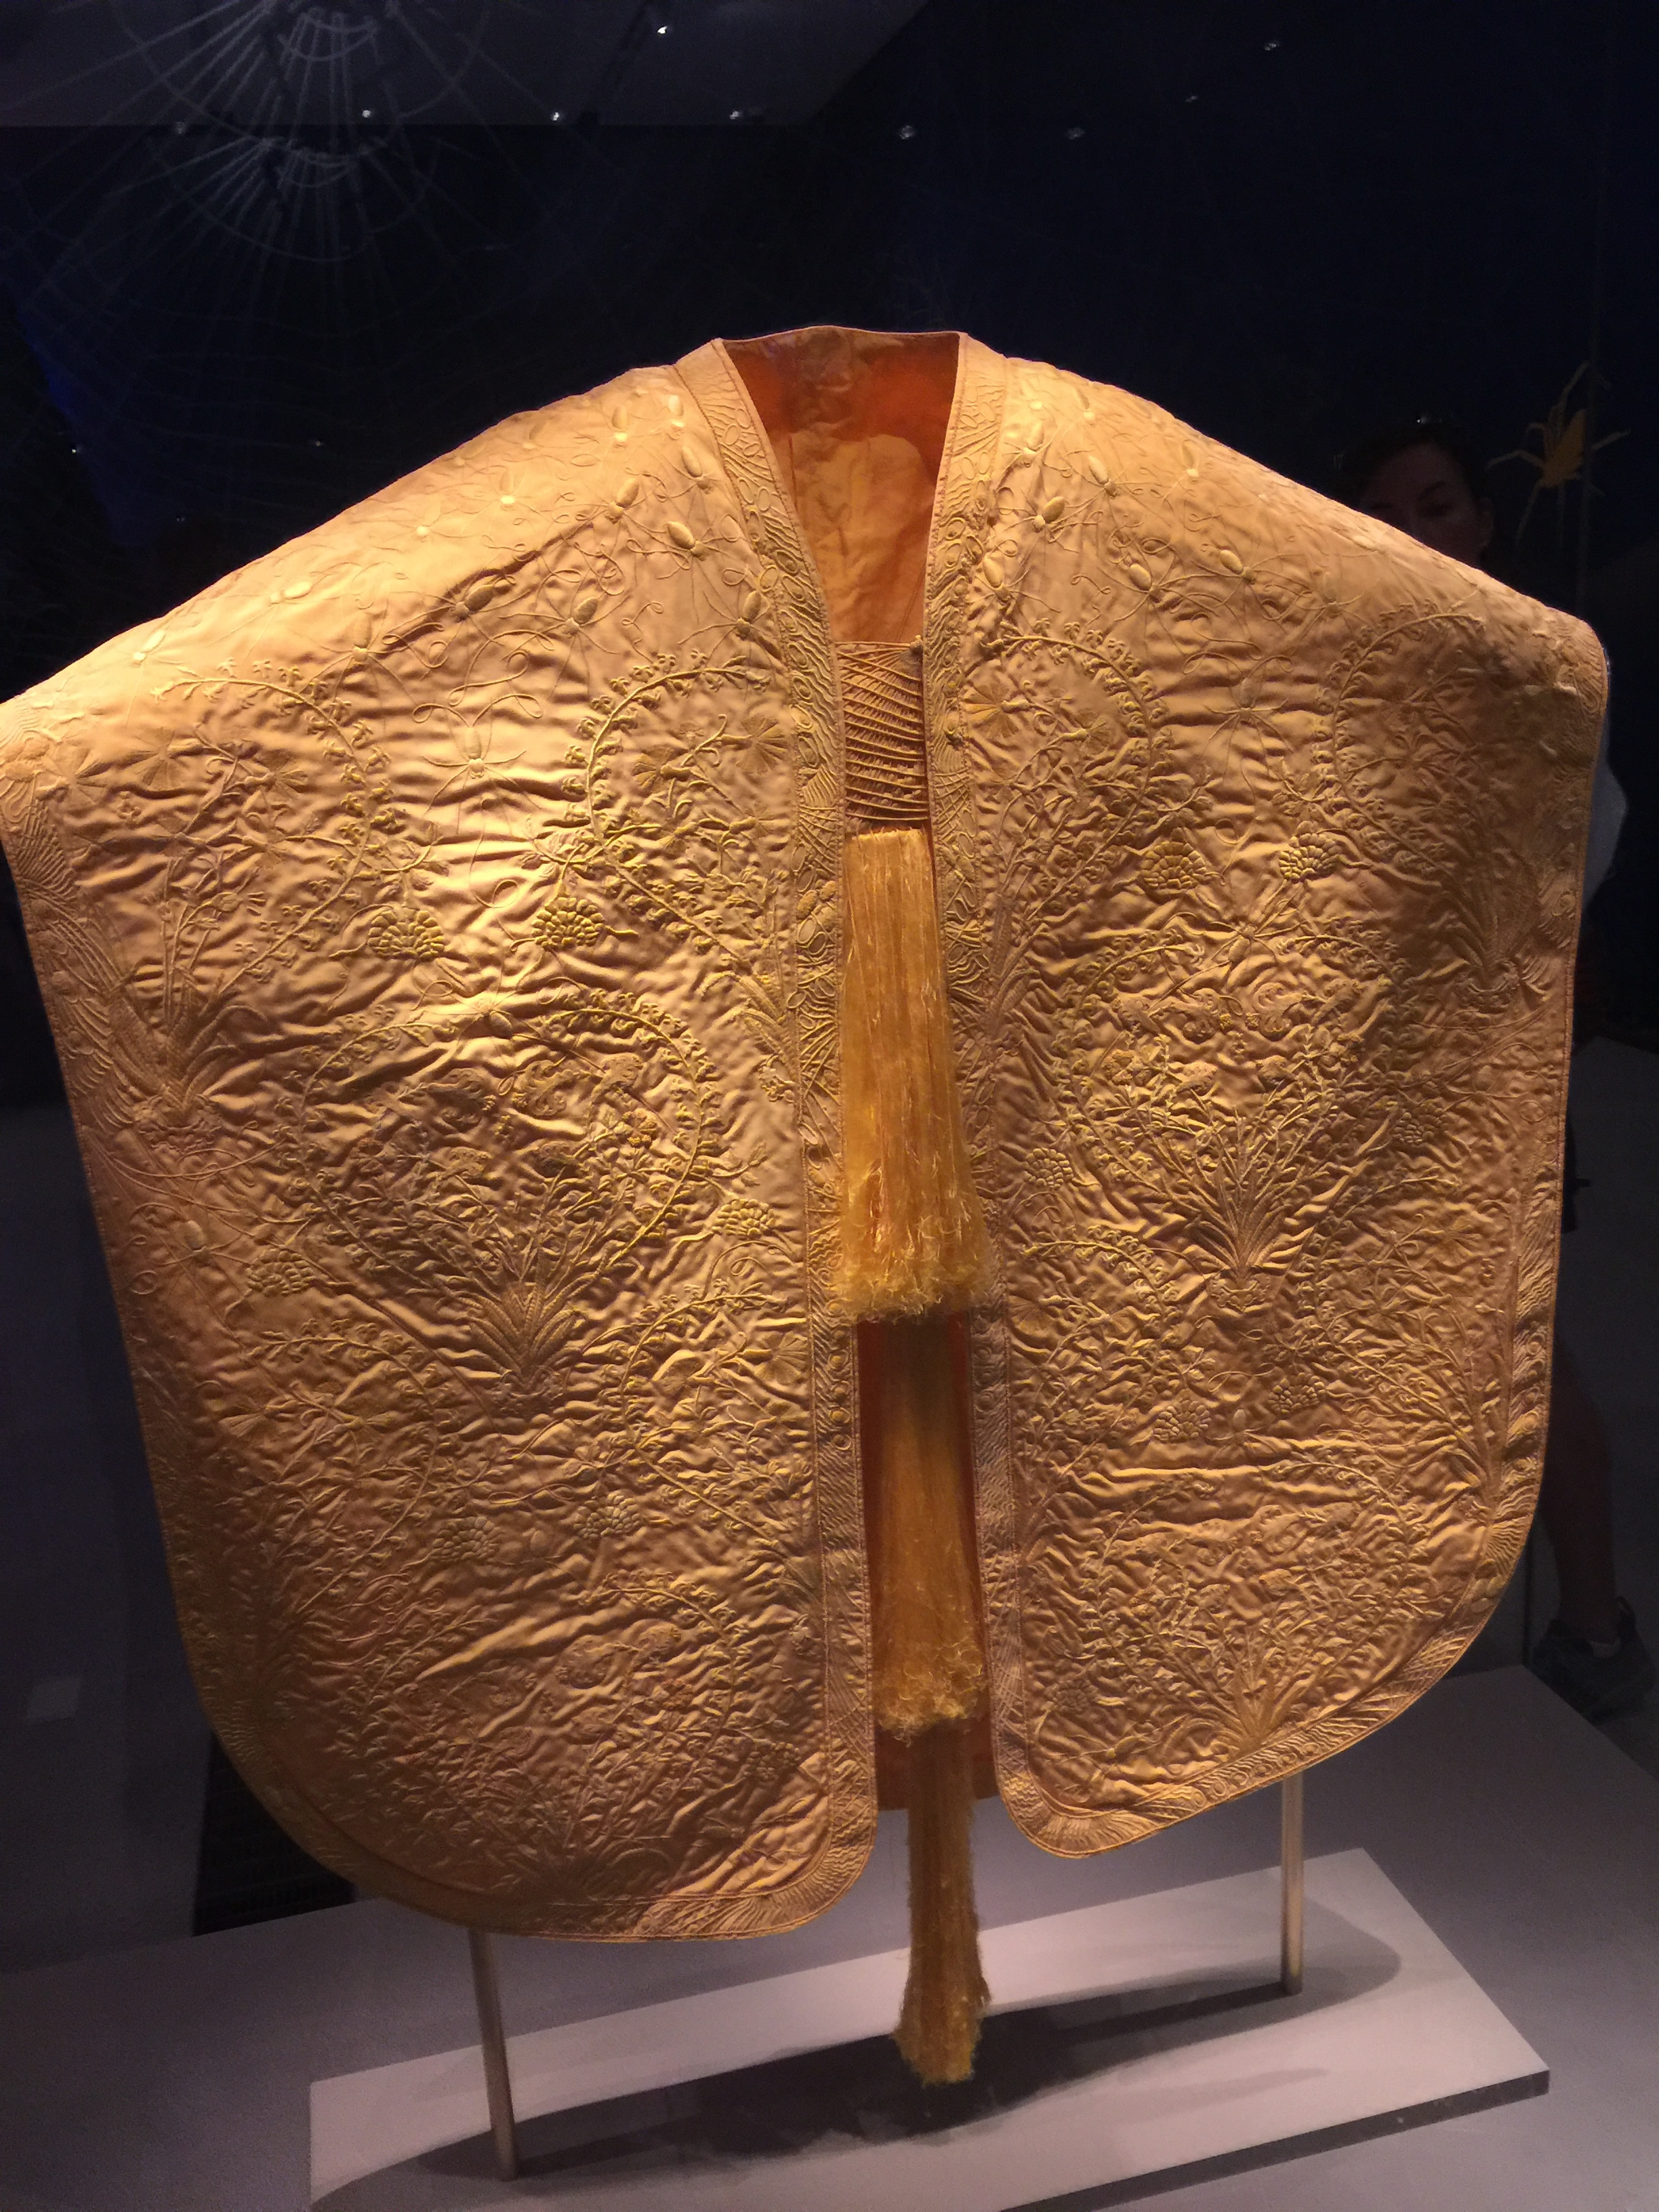 Golden Spider Silk Cape - Resplendent in a glass case in the middle of a dark room at the ROM, is a golden cape woven from the silk of 1.2 million gold-orb weaver spiders.